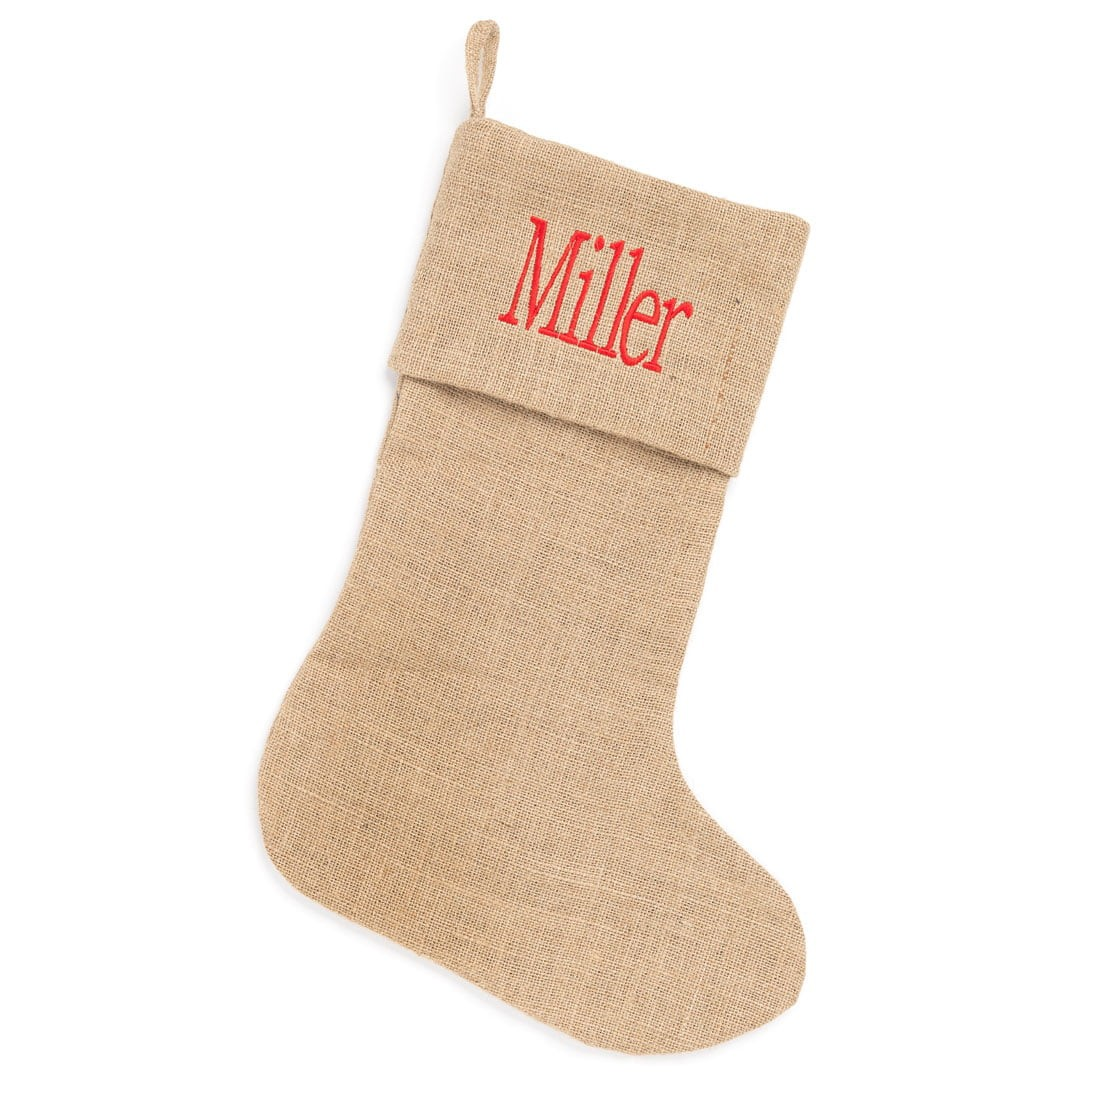 burlap stocking - Burlap Christmas Decorations Wholesale